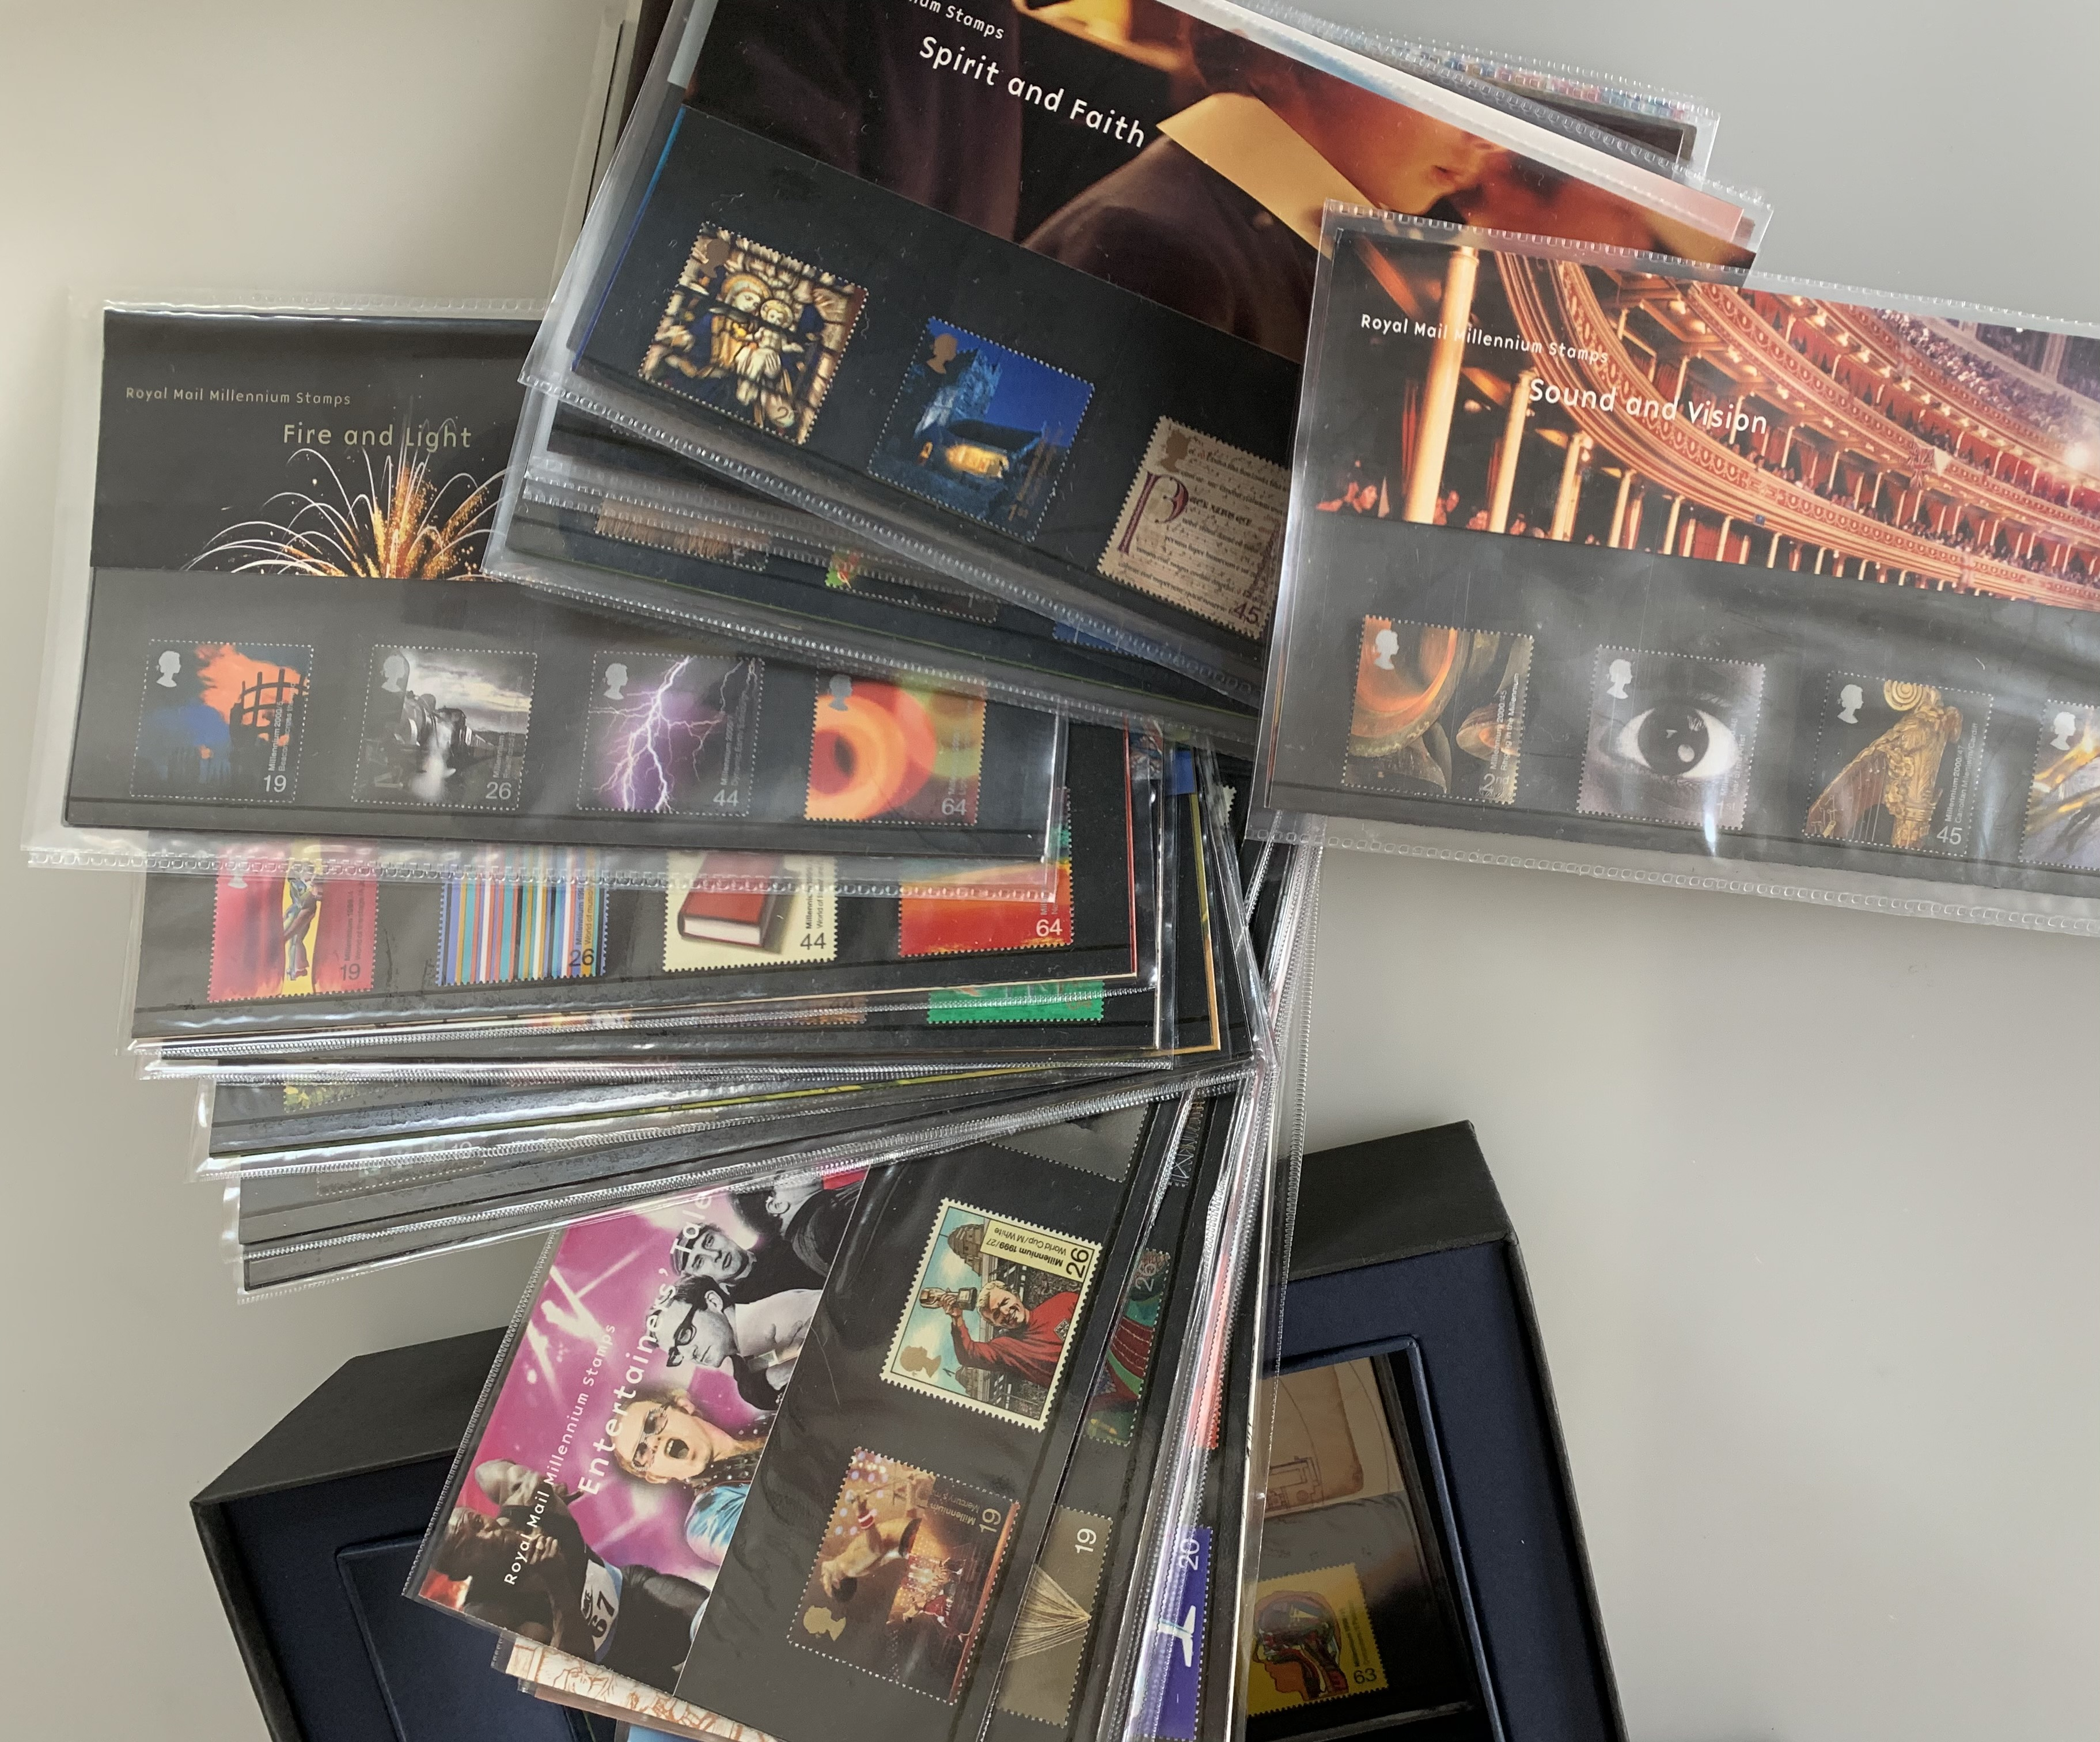 Royal Mail Millennium Collection of presentation packs - Image 2 of 2